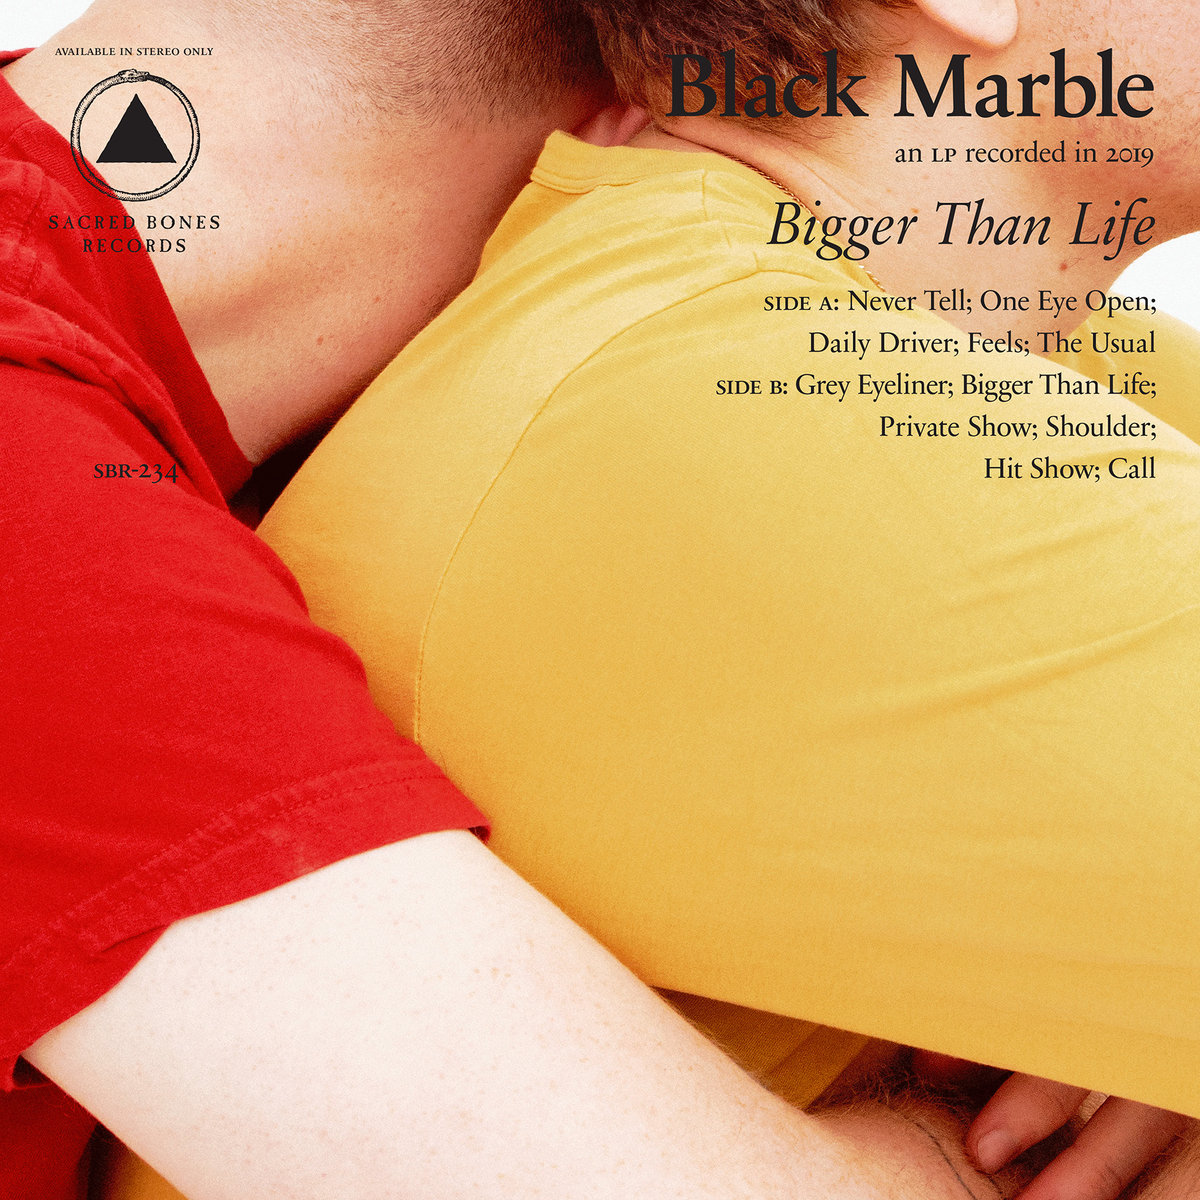 Black Marble - Bigger Than Life (LP; 2019)